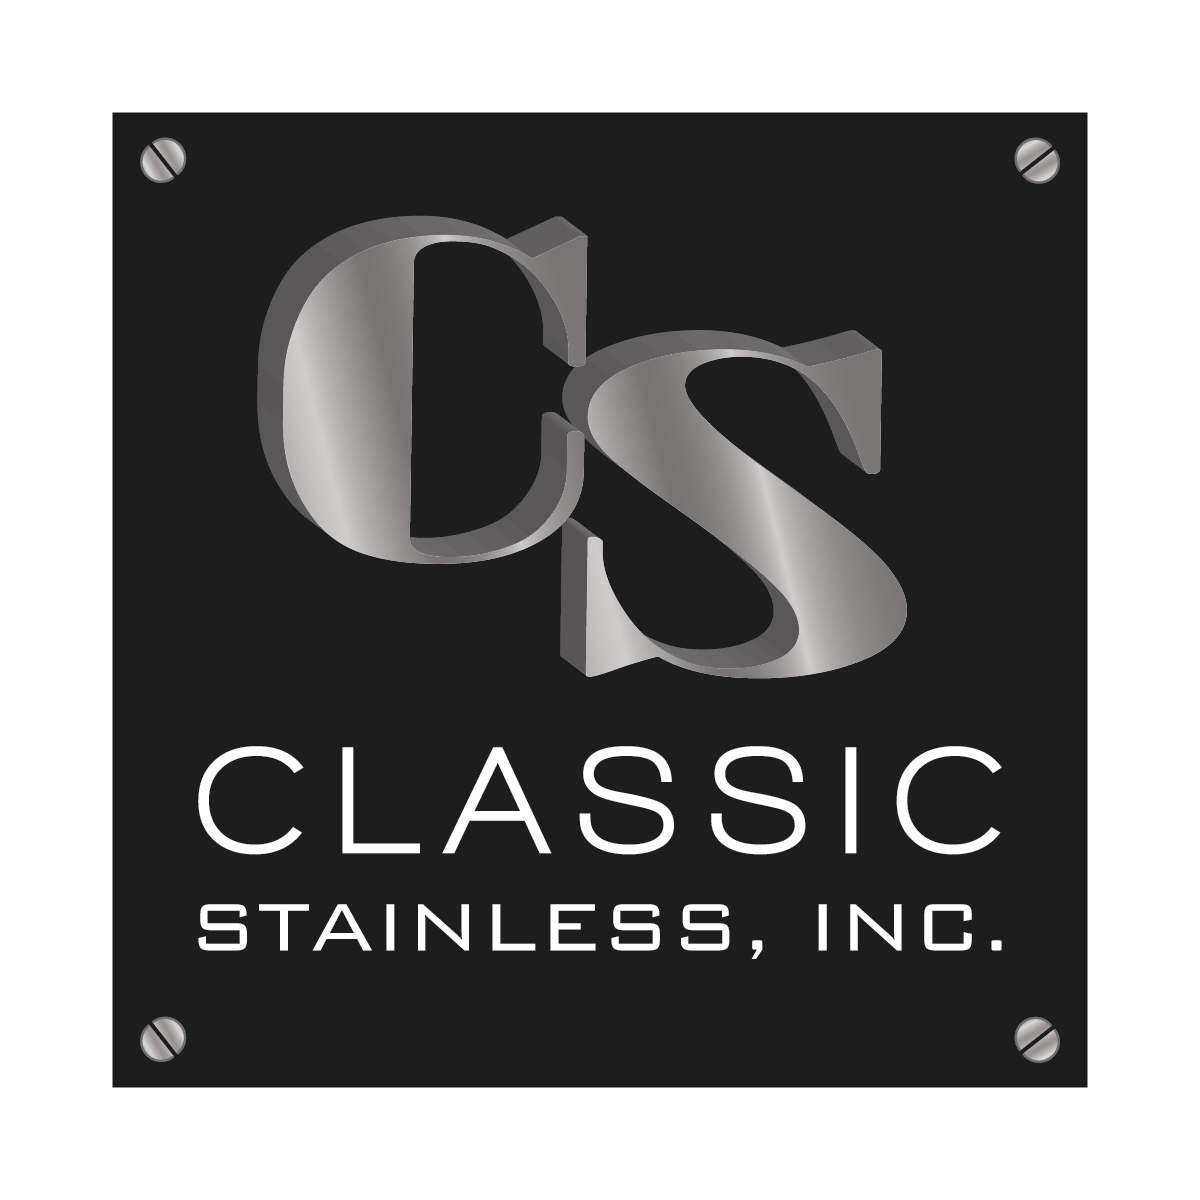 Logo design for Classic Stainless, Inc.